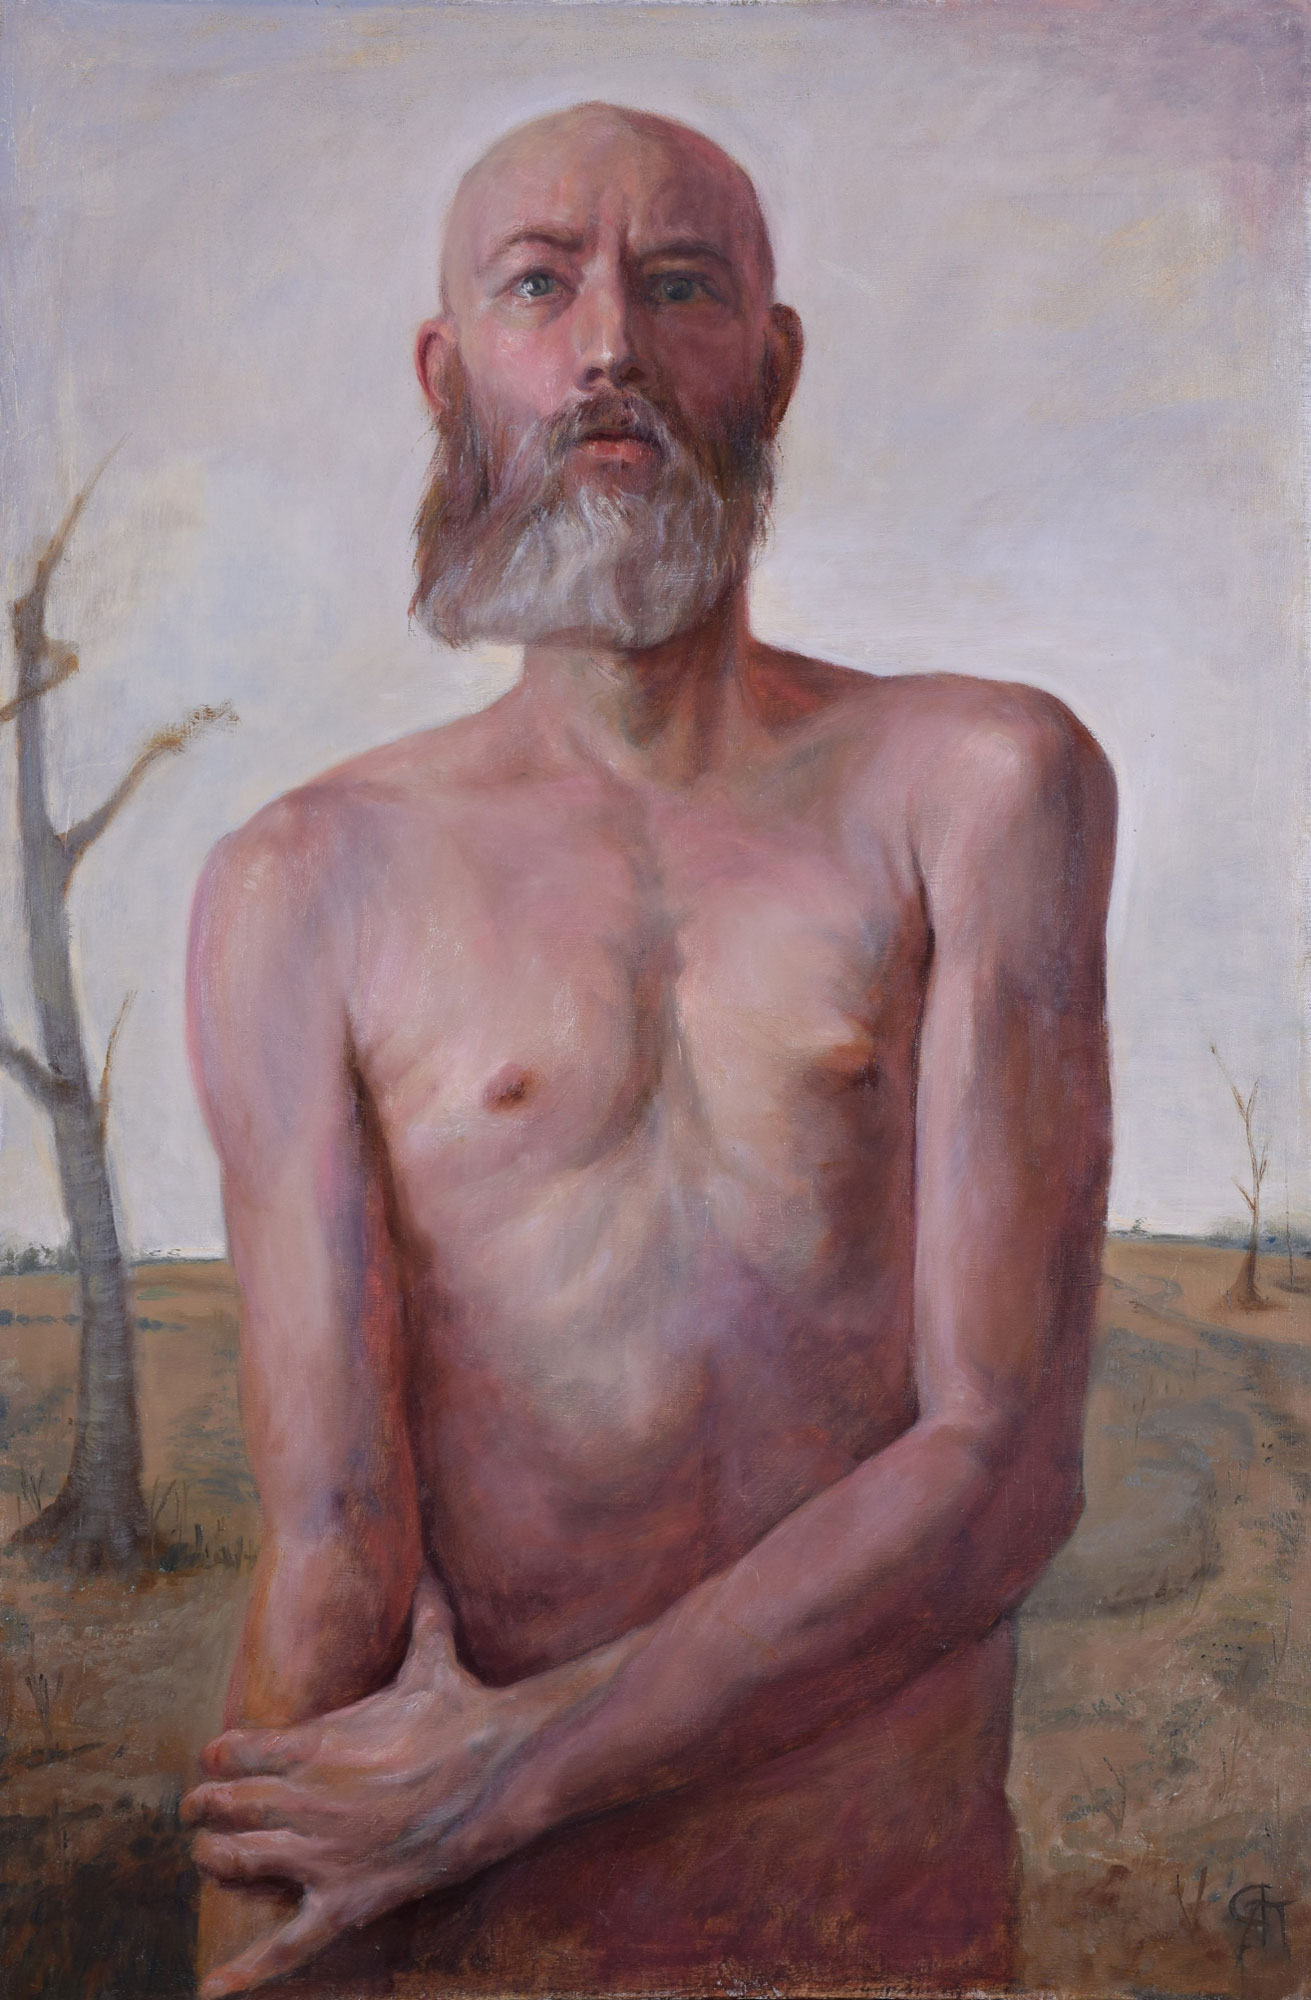 Rory Alan MacLean, Embraced, Oil on linen, 36 x 24 inches.jpg